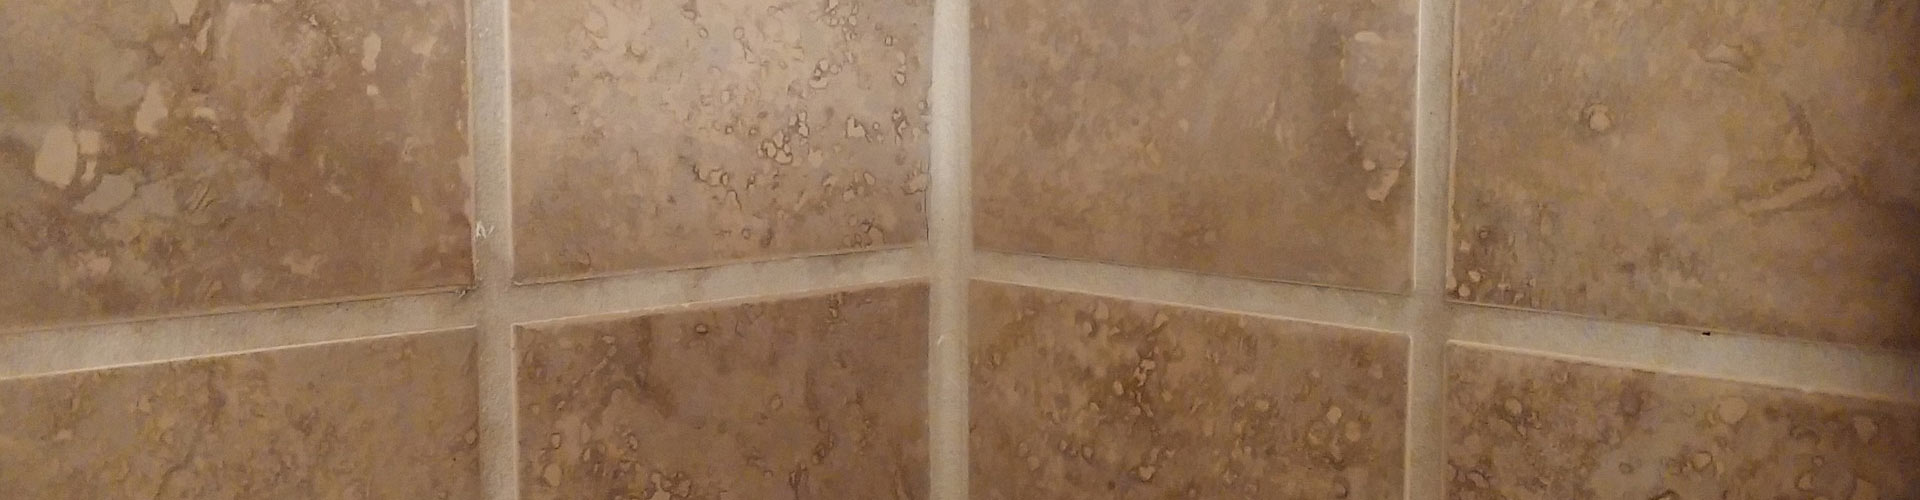 Grout and Tile Cleaning AZ